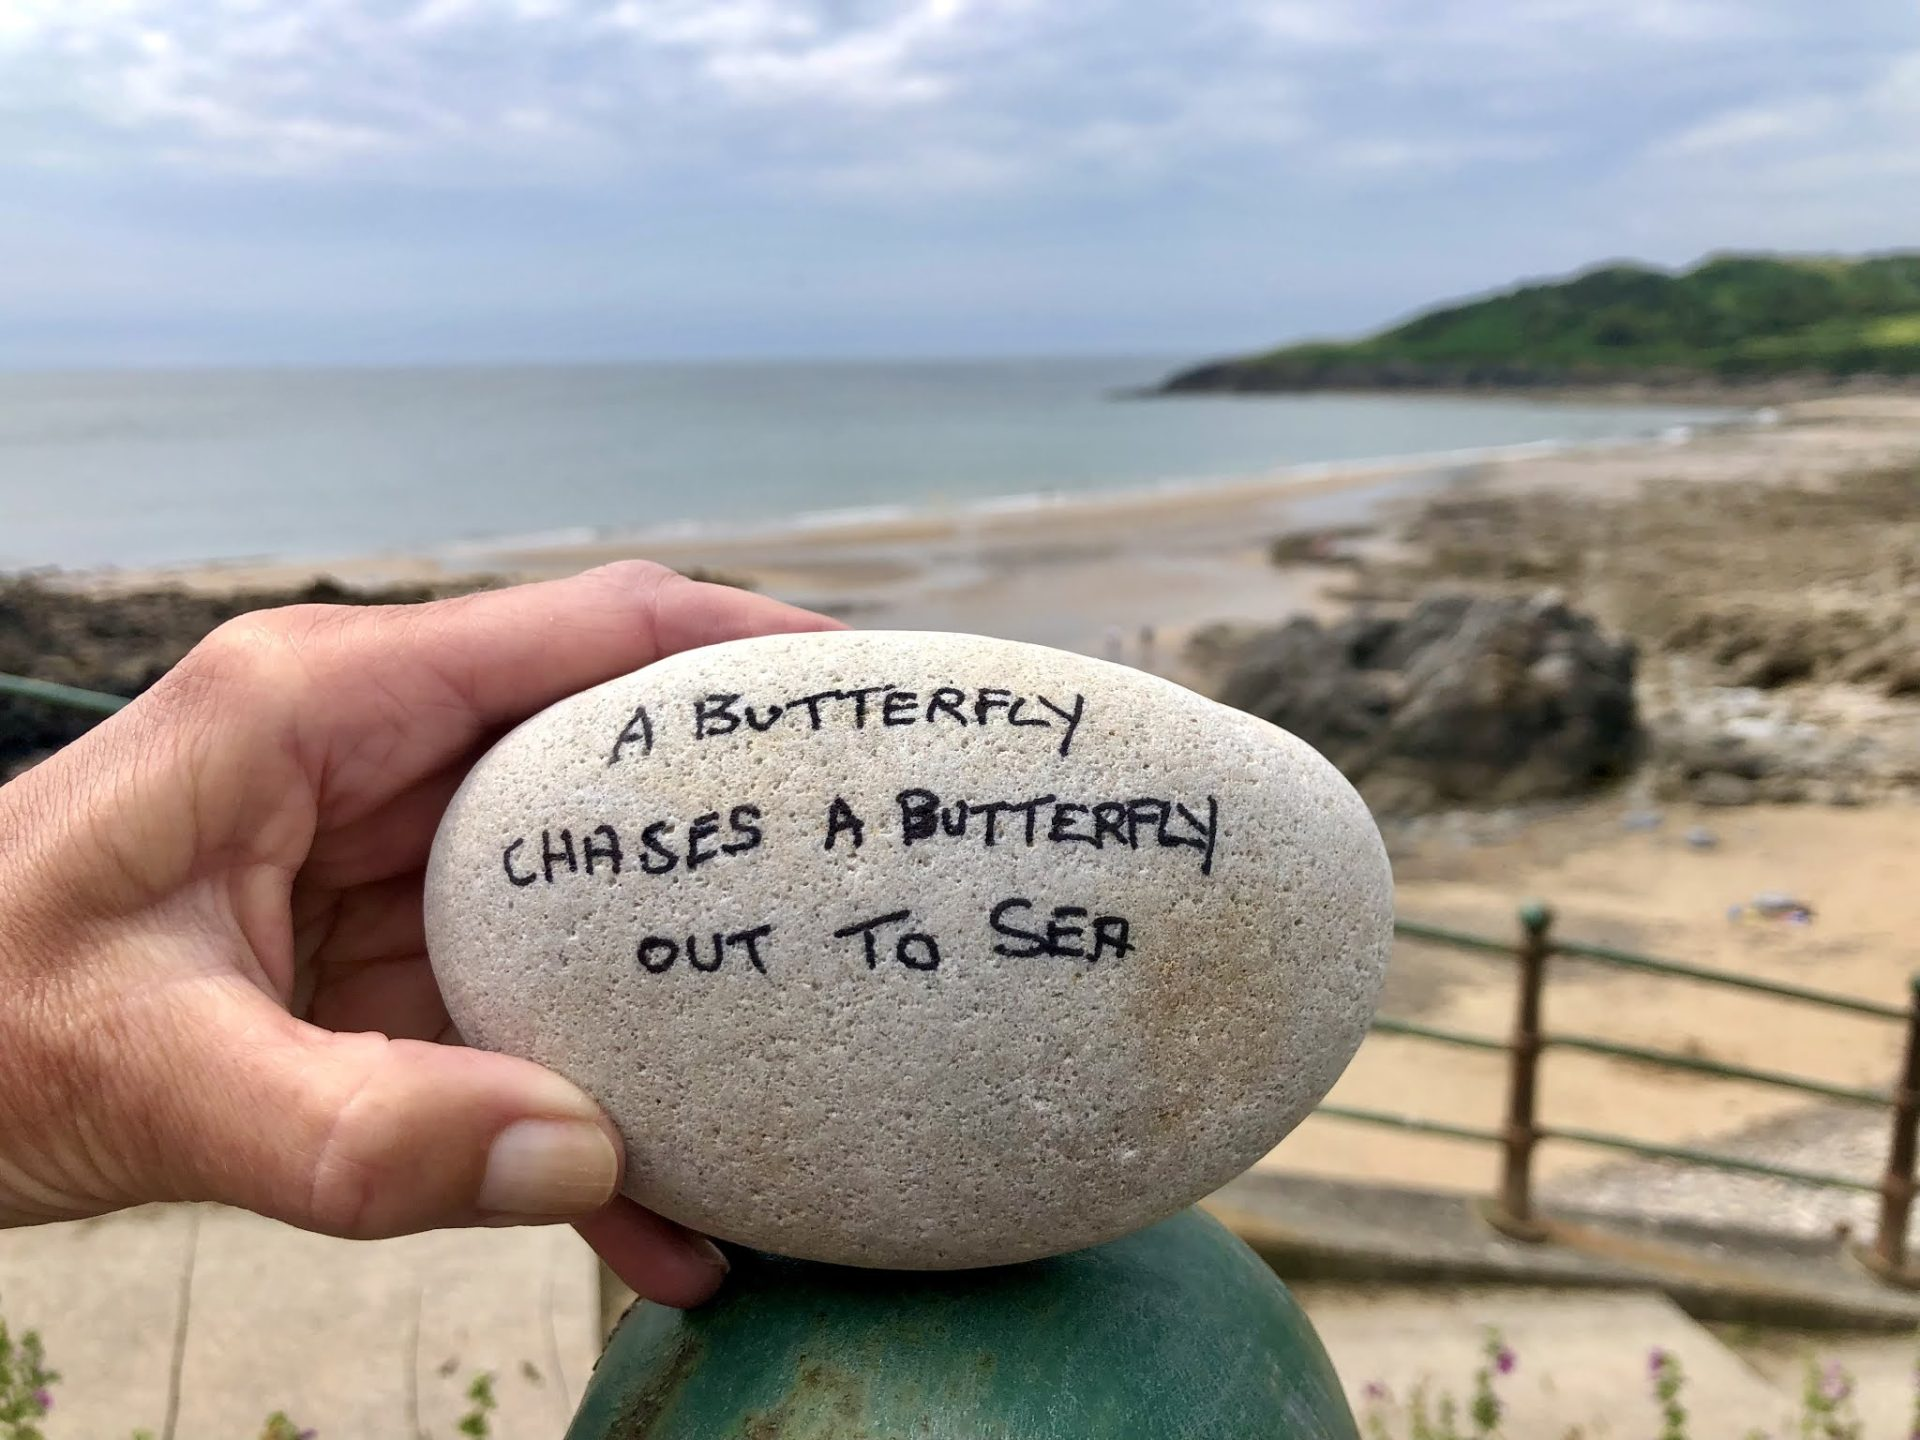 The image depicts a poem written in black pen on a stone pebble. The poem reads 'A butterfly chases a butterfly out to sea'.